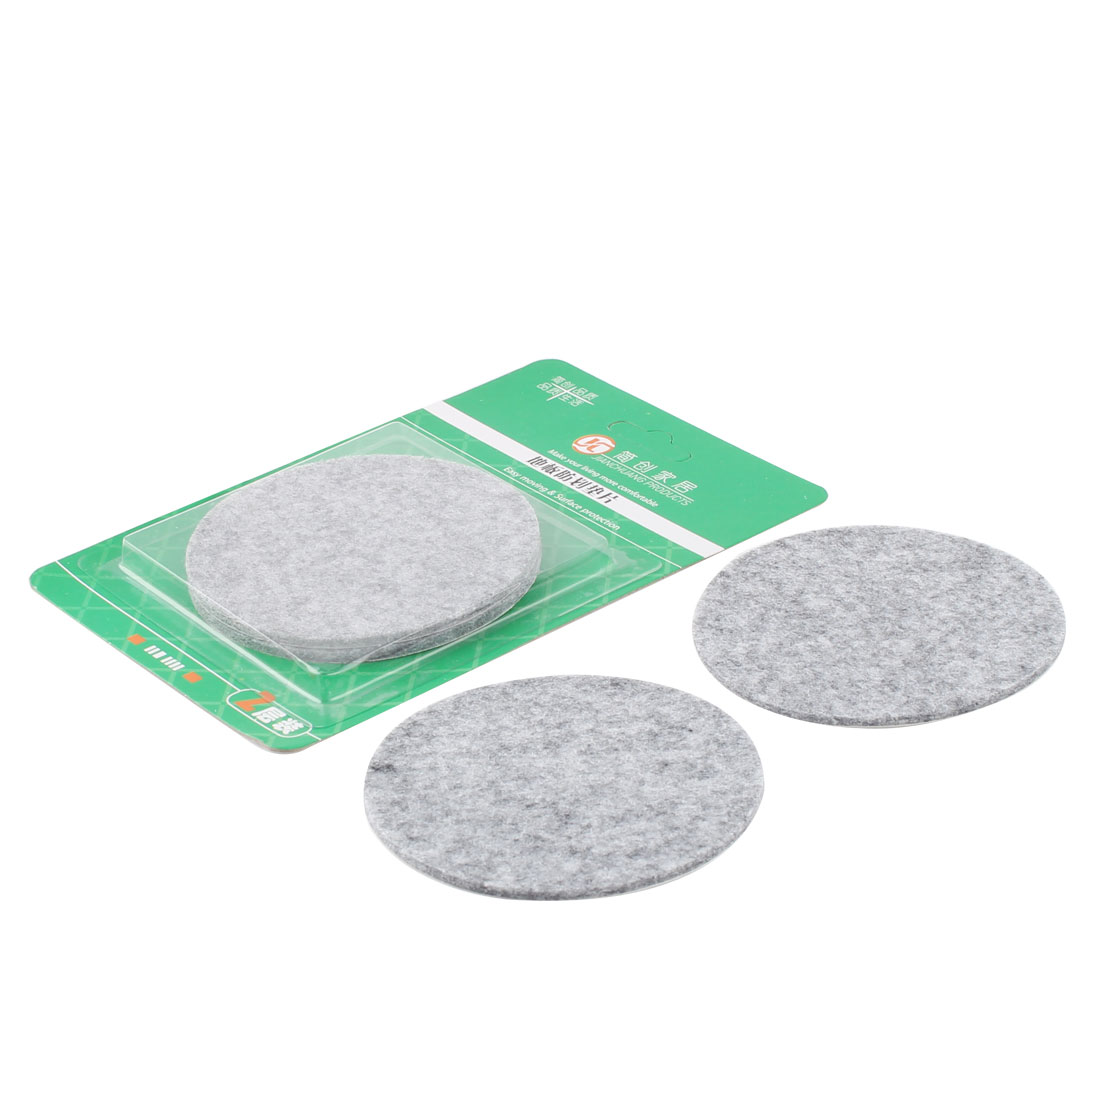 Table Chair Legs Protect Floor Furniture Felt Pads Cushions Mats Gray 85mm Dia 4pcs